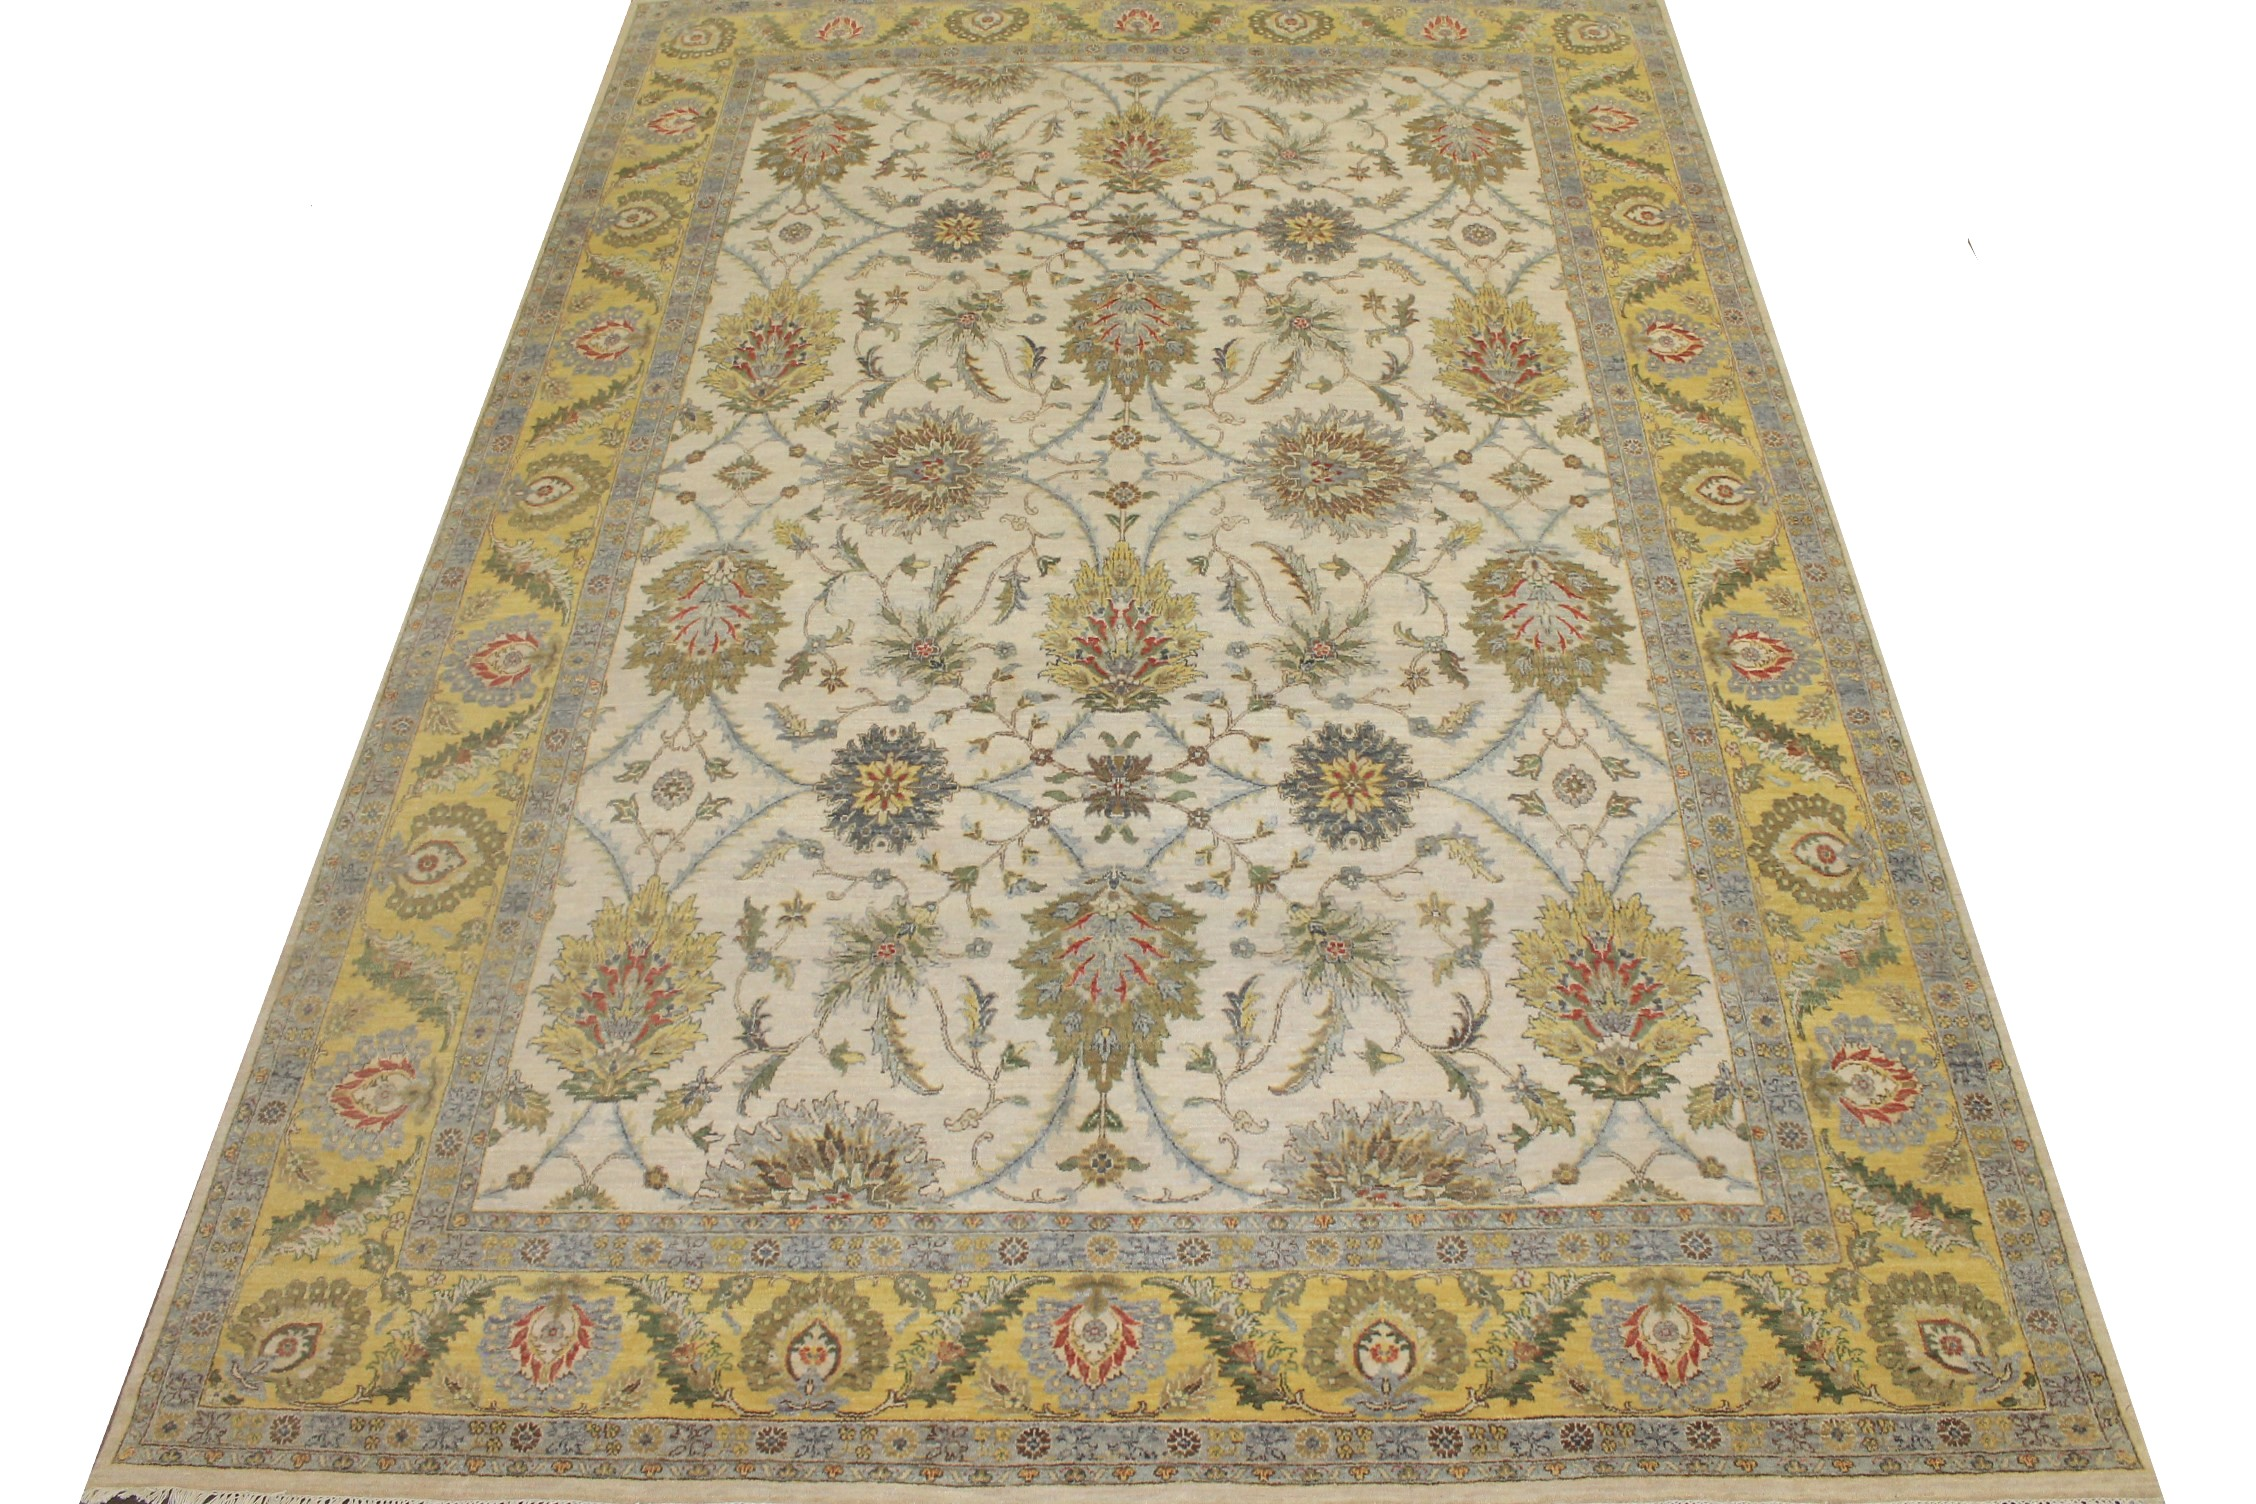 9x12 Traditional Hand Knotted Wool Area Rug - MR024811